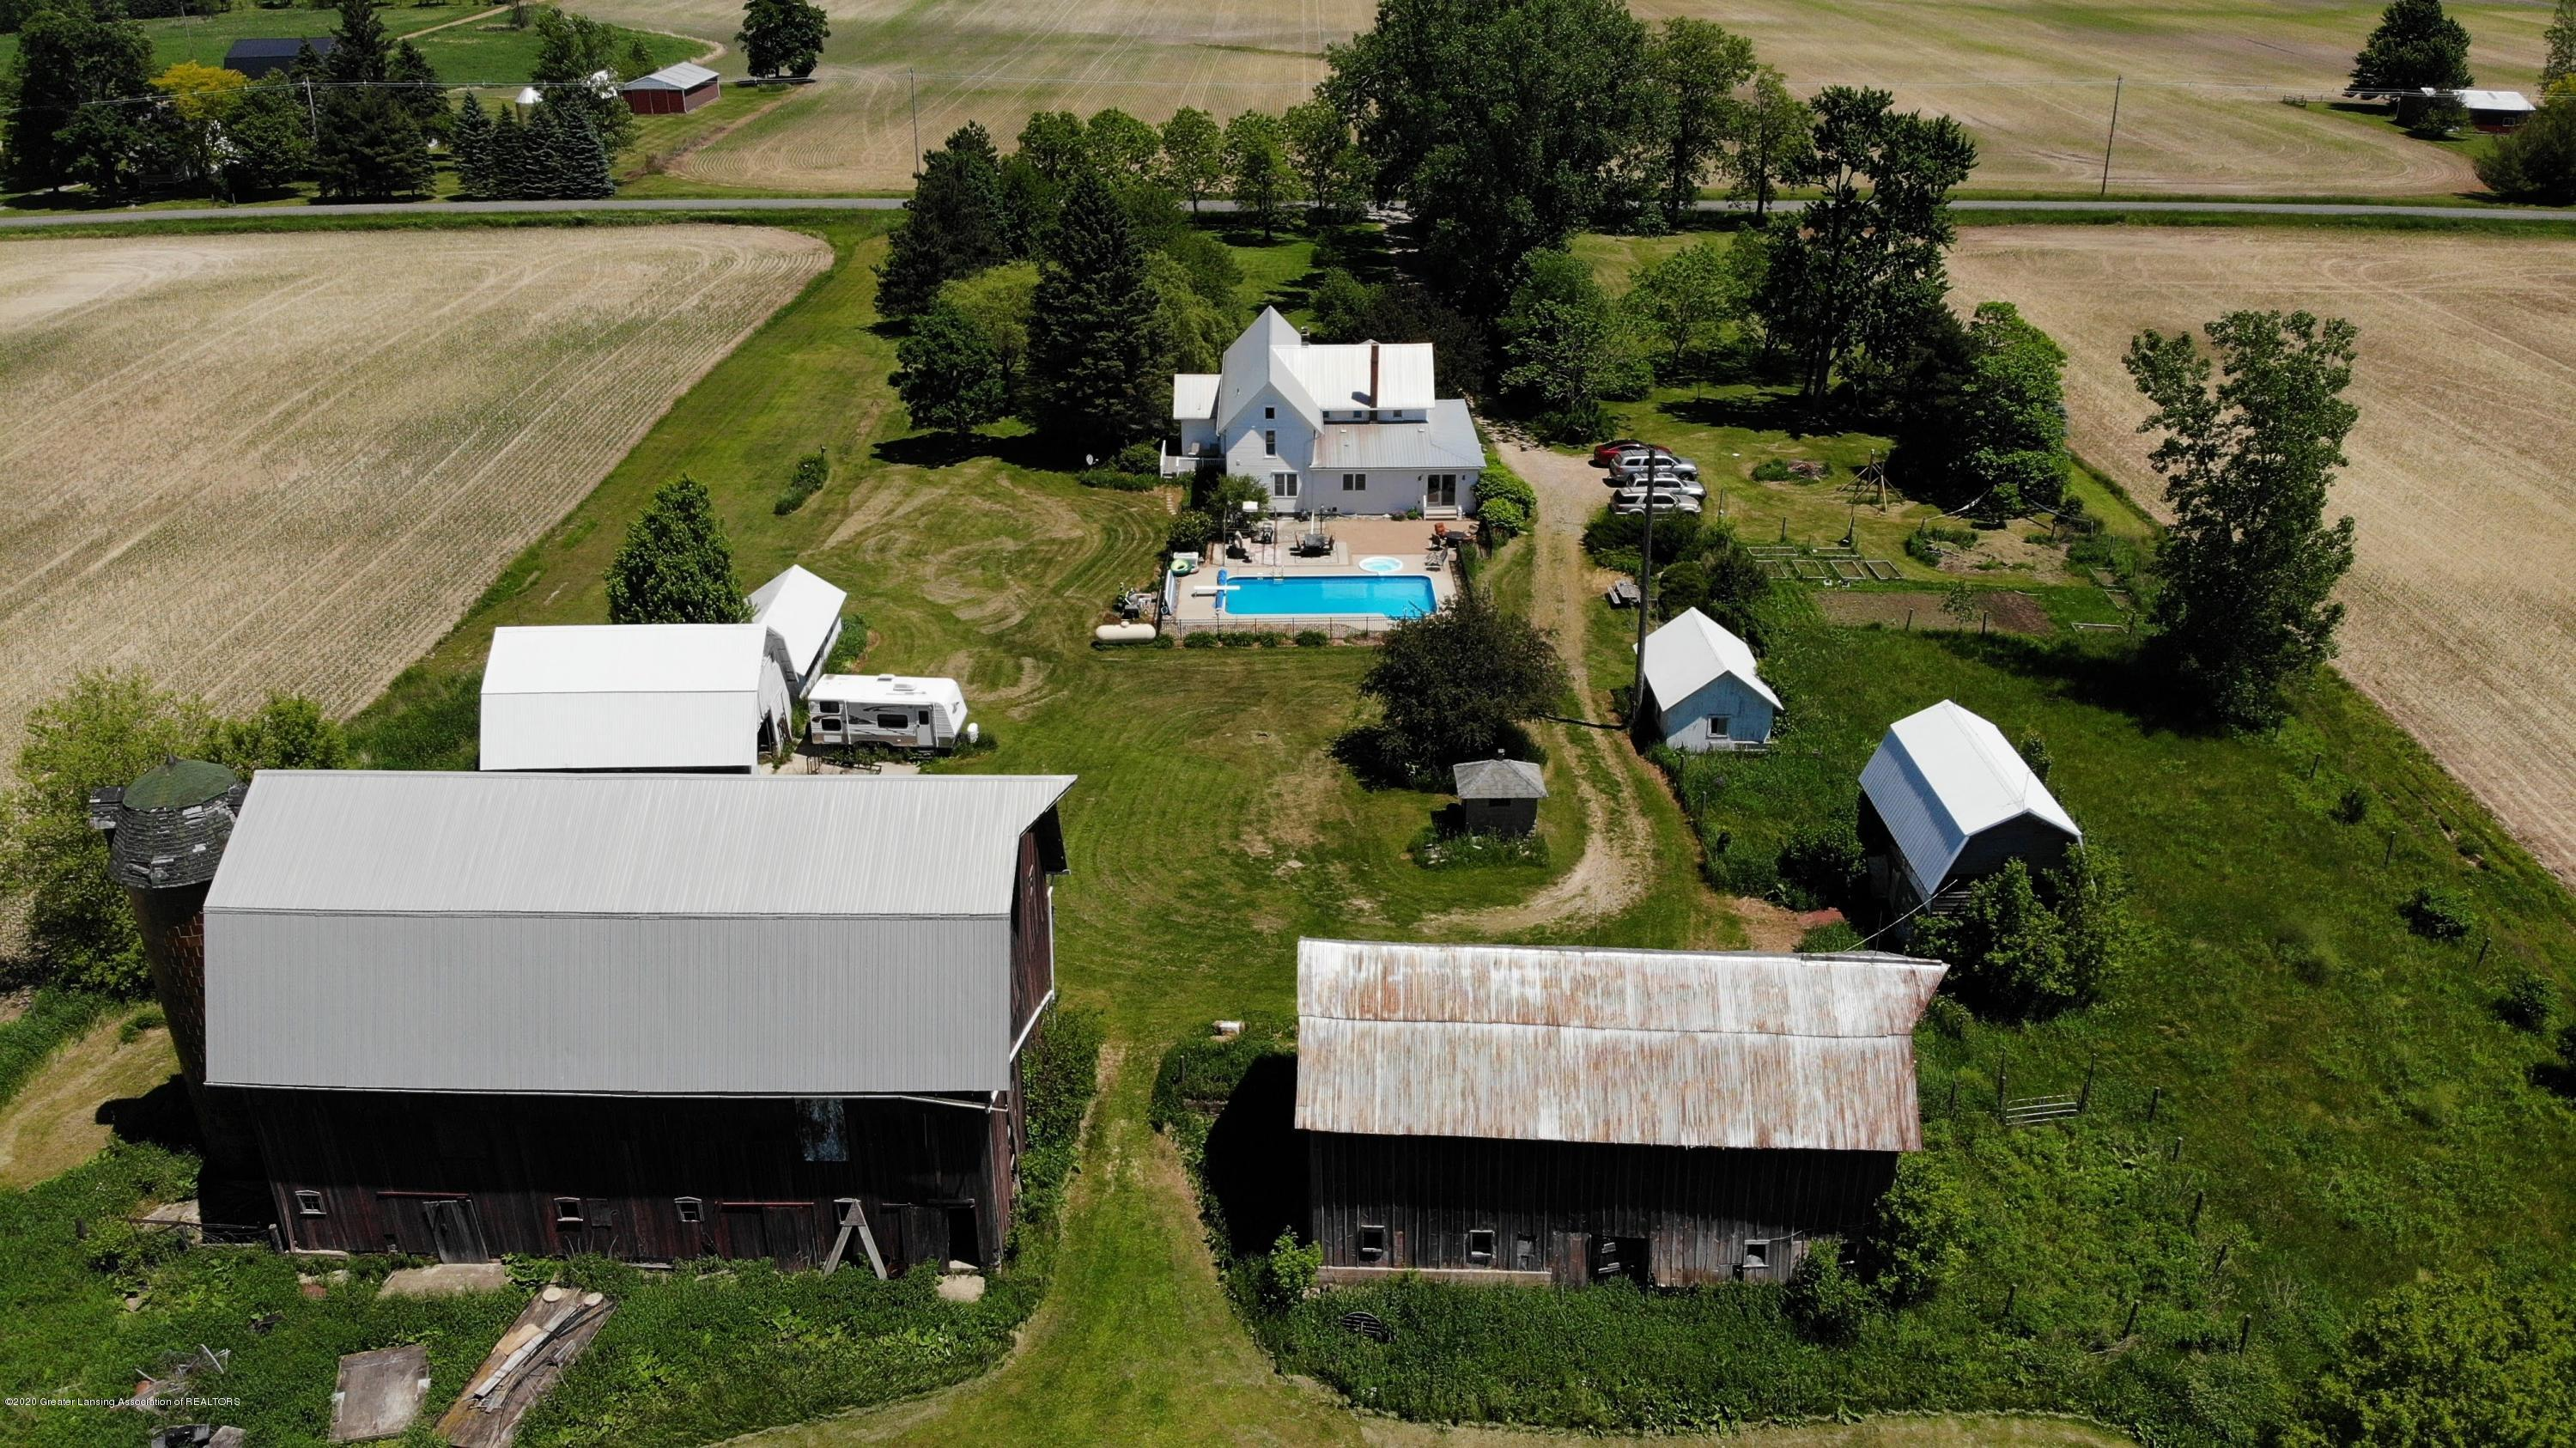 9108 S Krepps Rd - Aerial view - 3